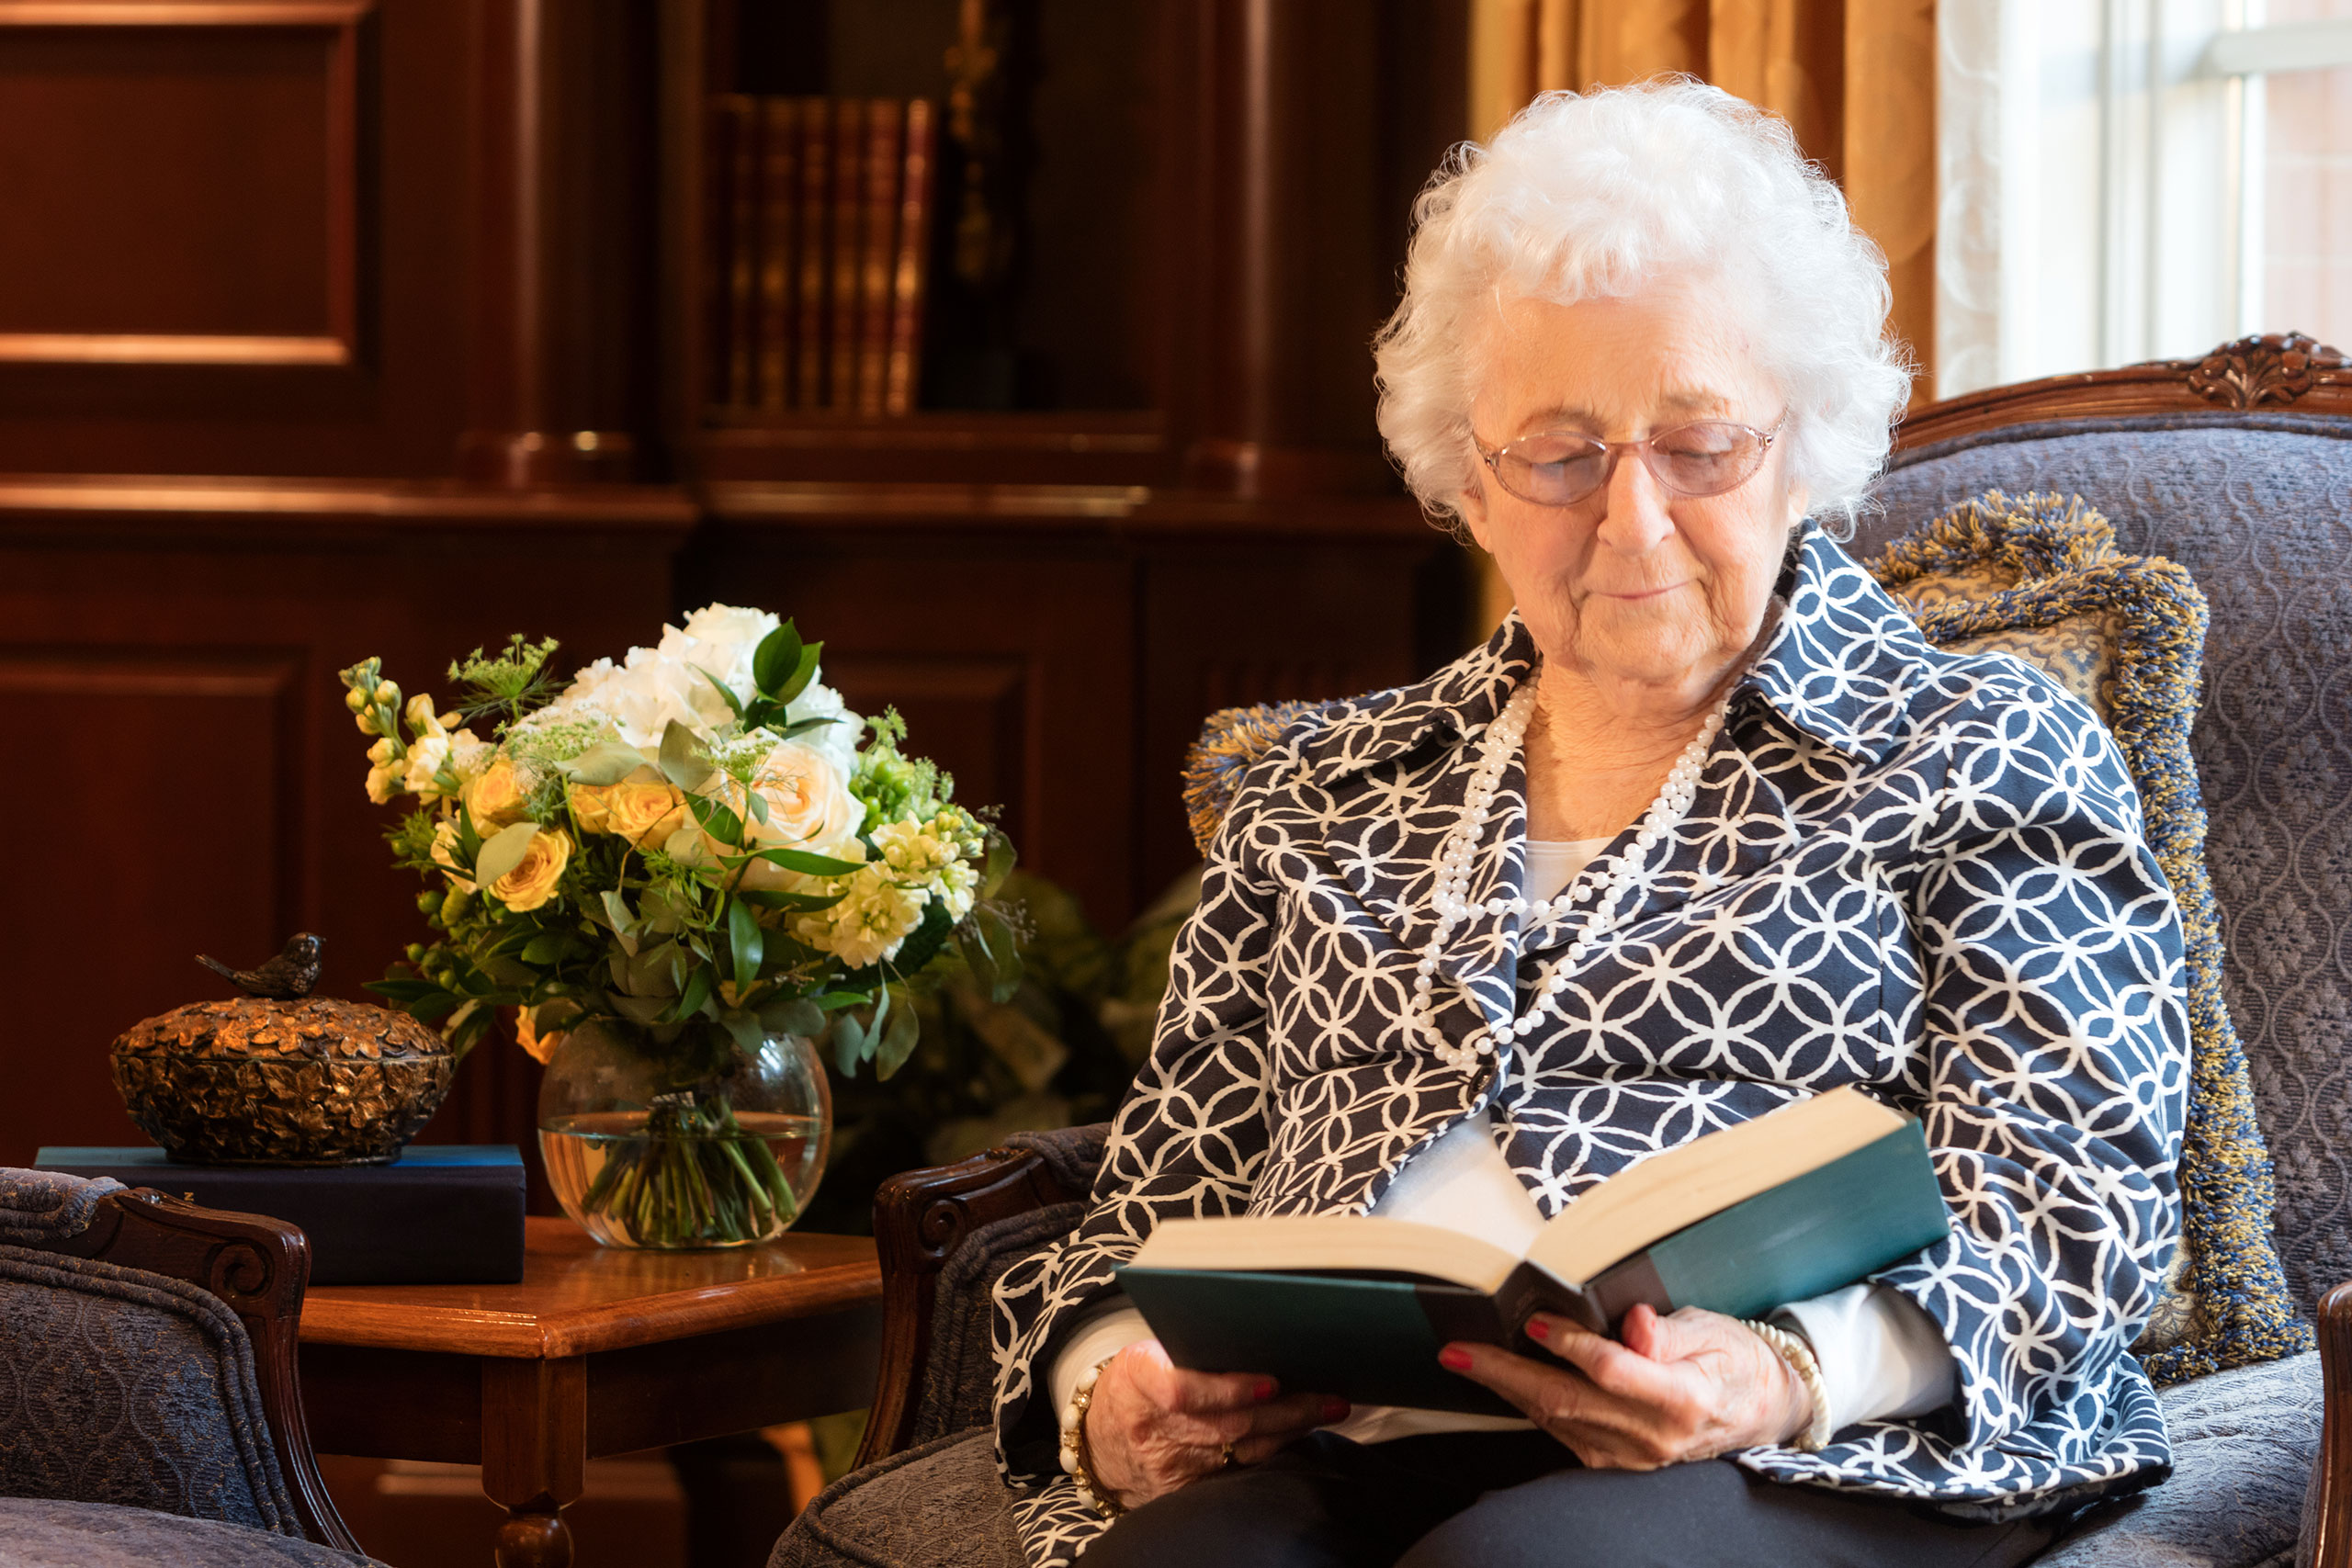 Female resident reading a book in the living room.